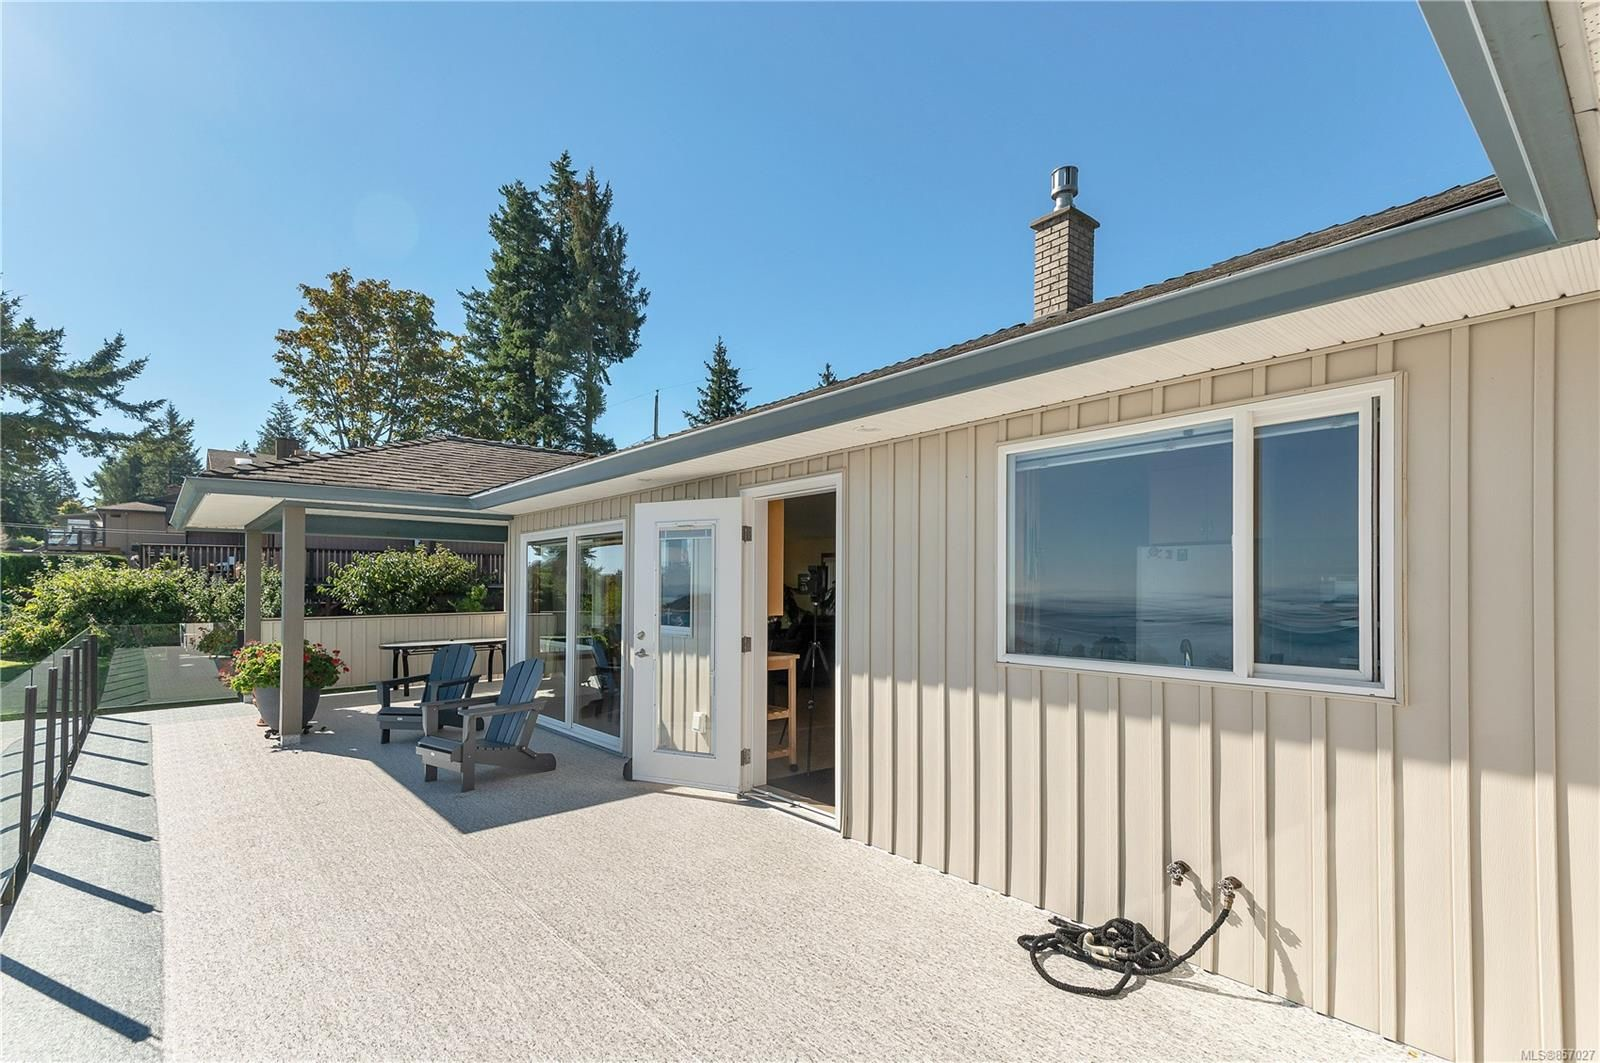 Photo 54: Photos: 253 S Alder St in : CR Campbell River South House for sale (Campbell River)  : MLS®# 857027